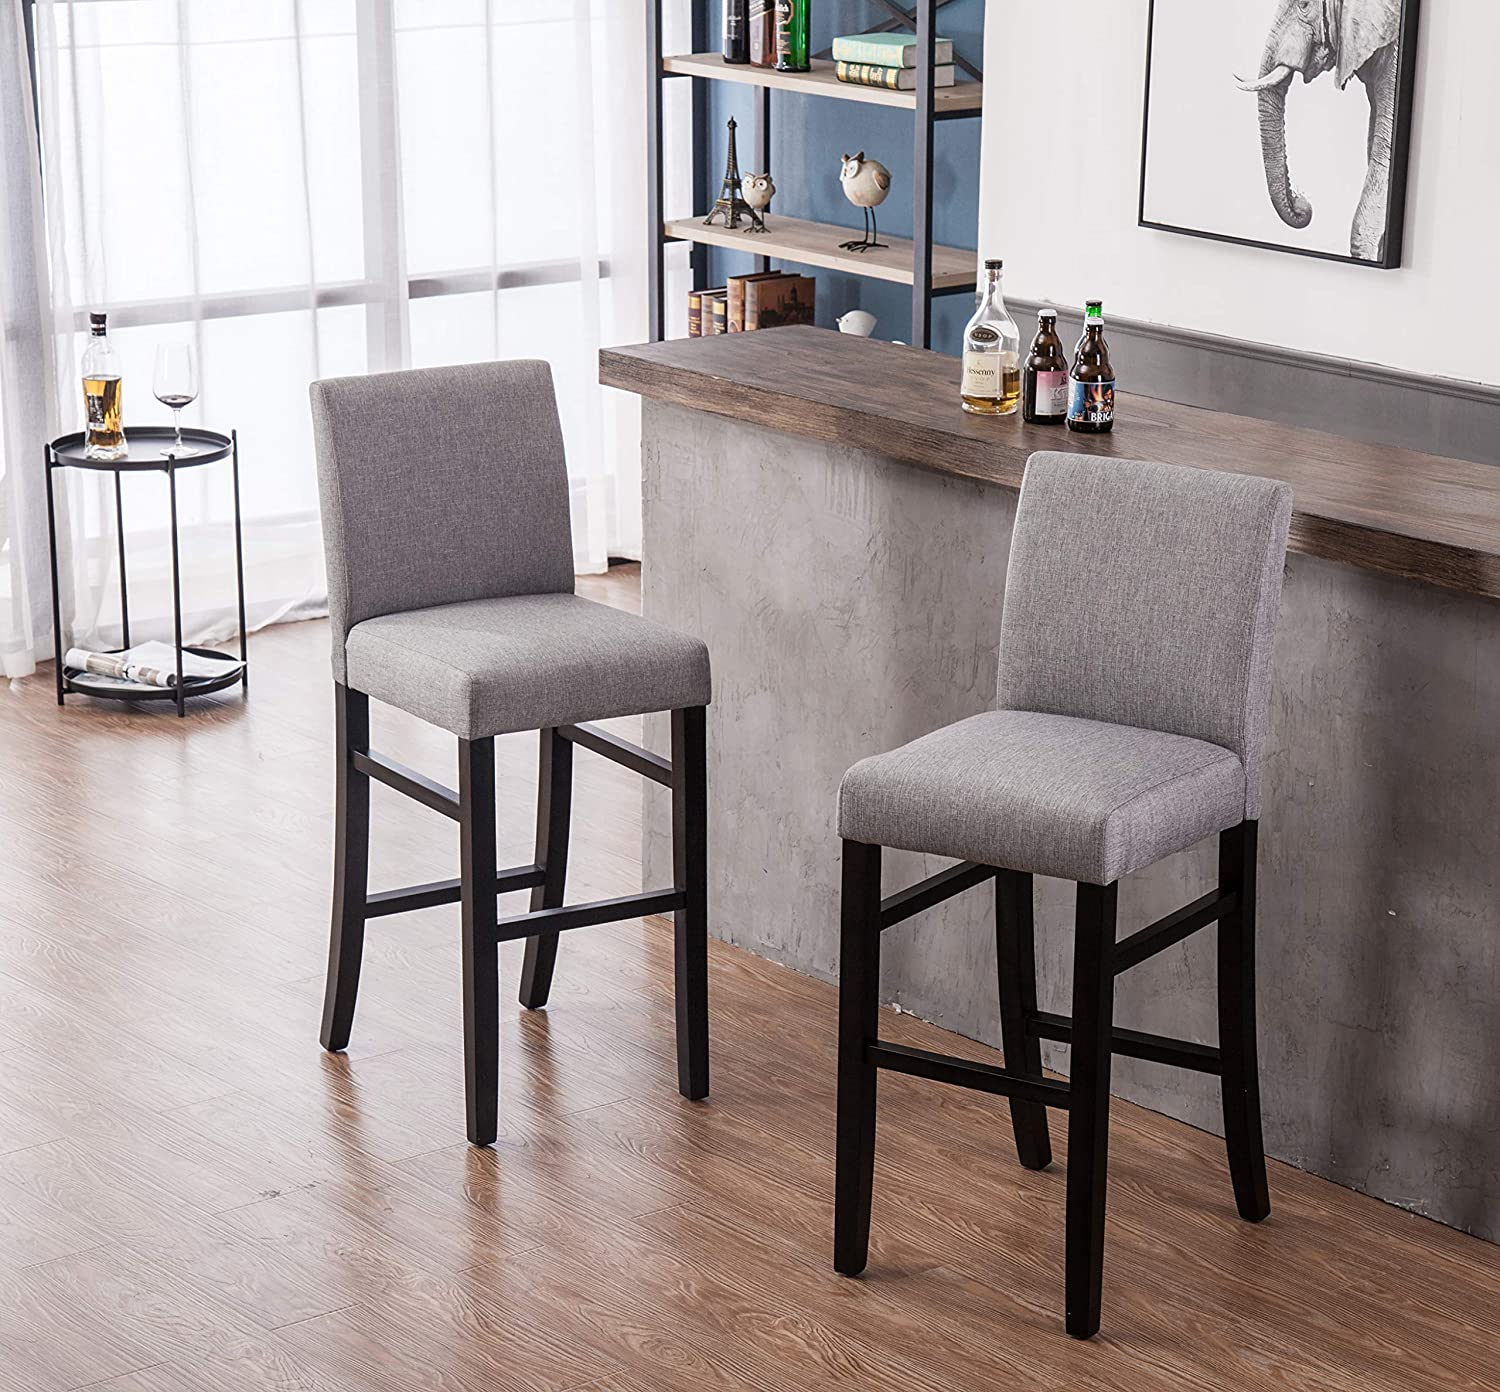 YEEFY Dining Chairs High Counter Height Side Chairs with Wood Legs, Set of 2 (Grey)